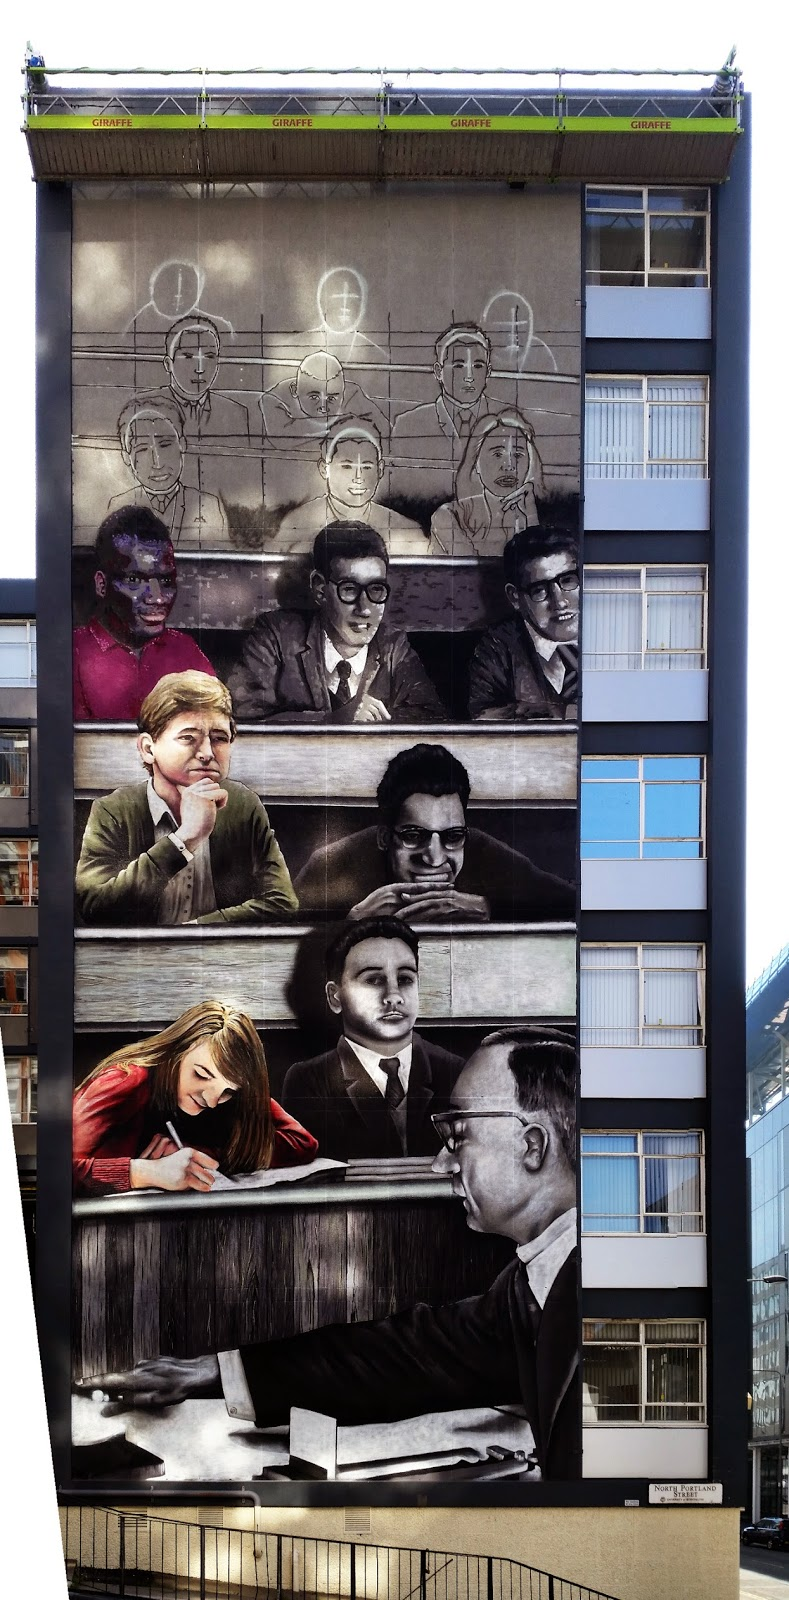 University of Strathclyde, Graham Building Mural, Glasgow, Rogue One